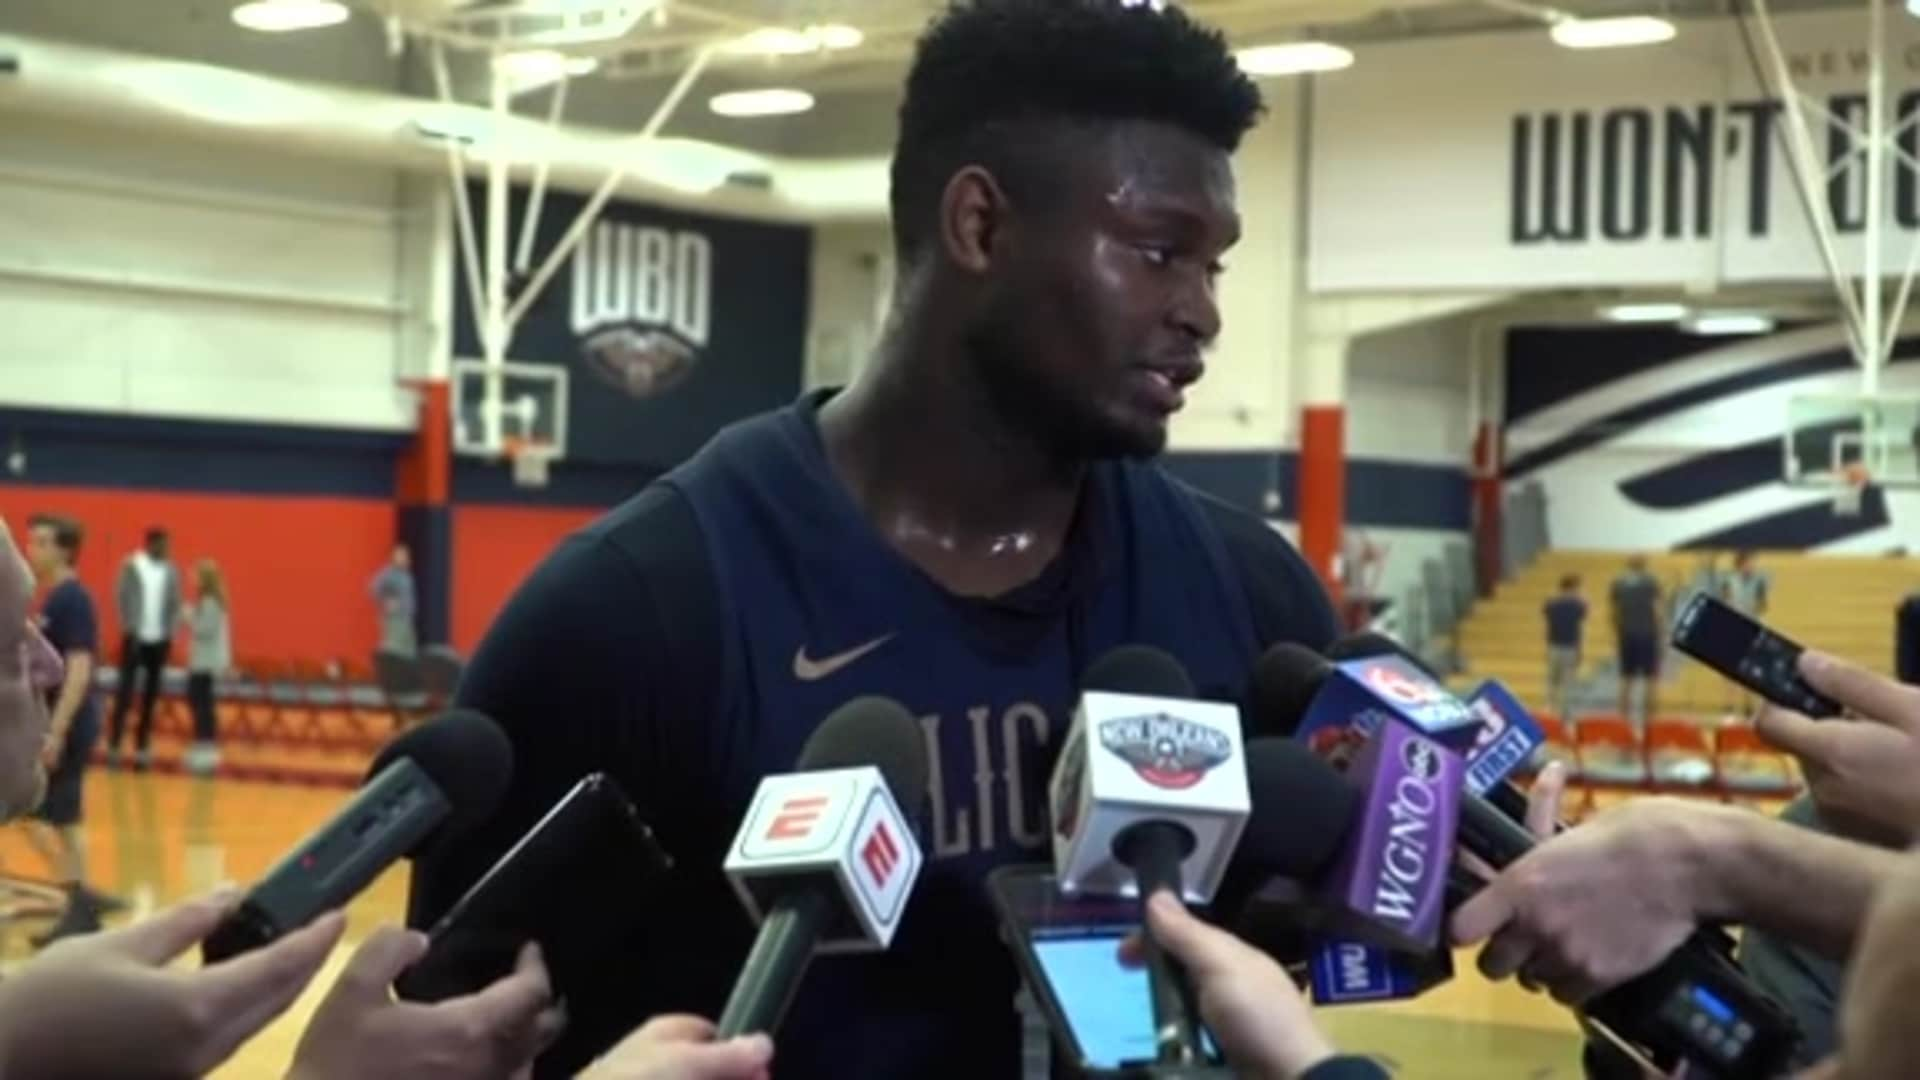 Pelicans Practice: Zion Williamson 02-20-20